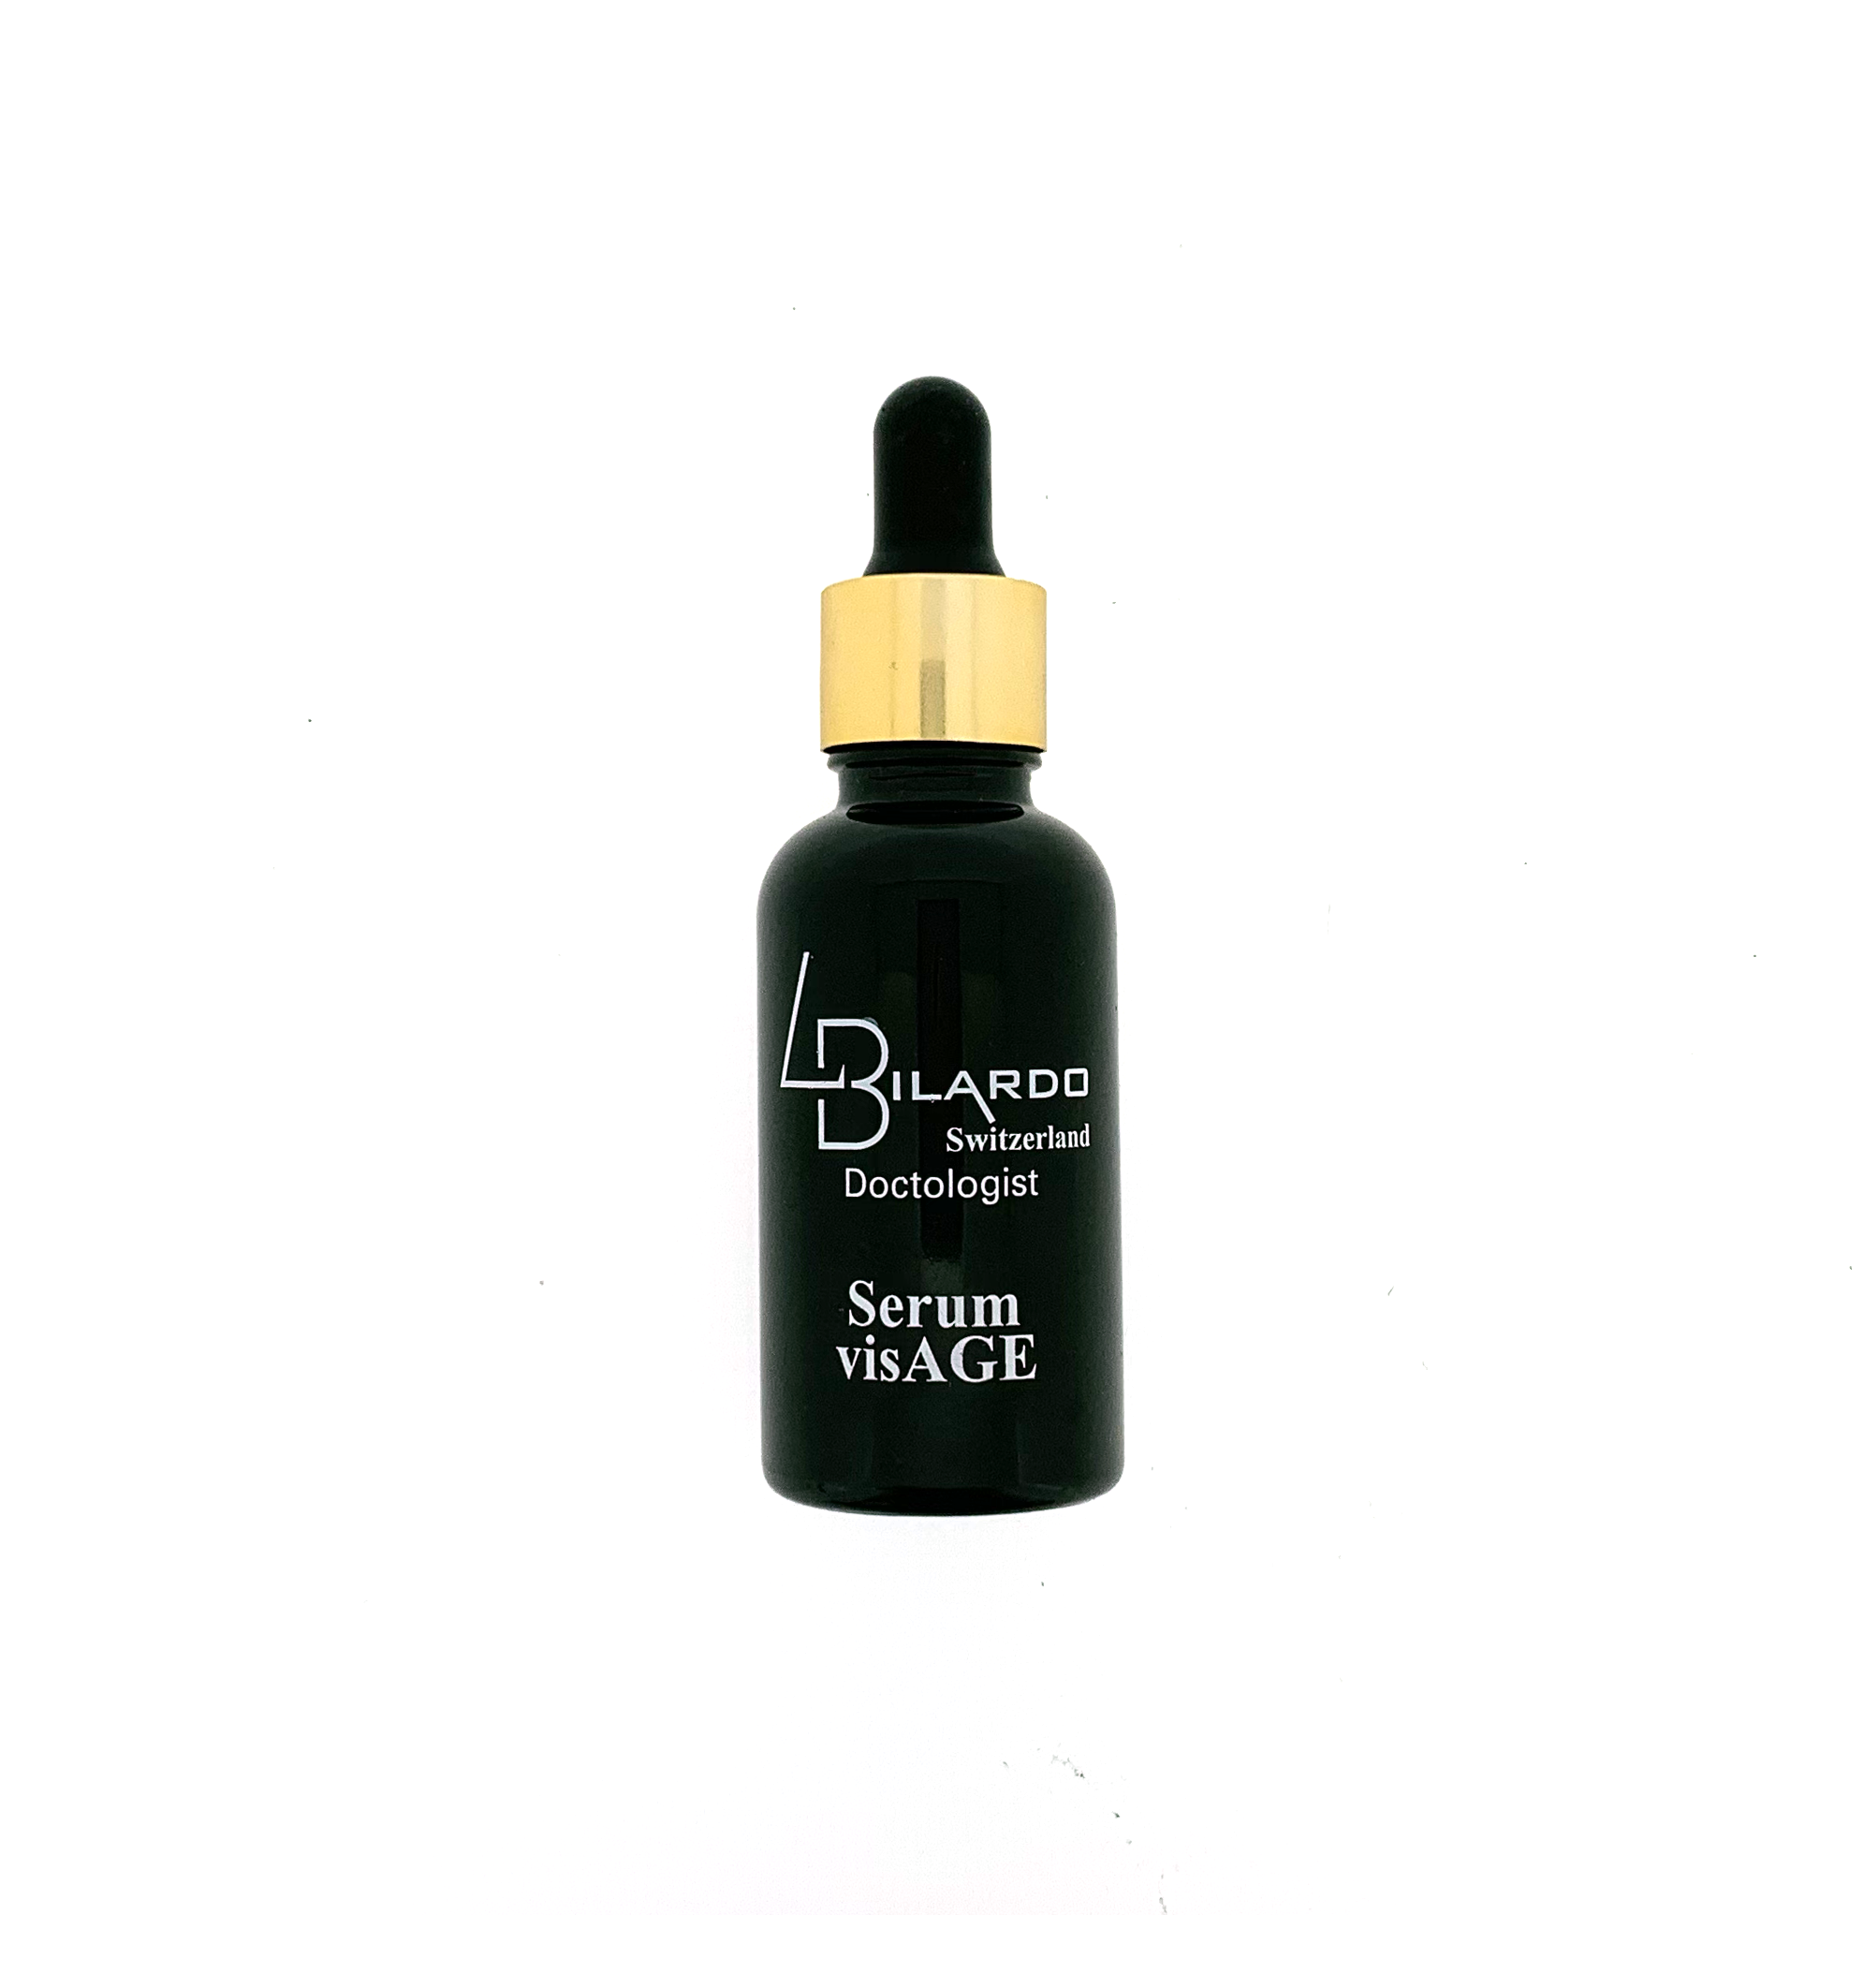 Serum global fermeté - Serum VisAGE